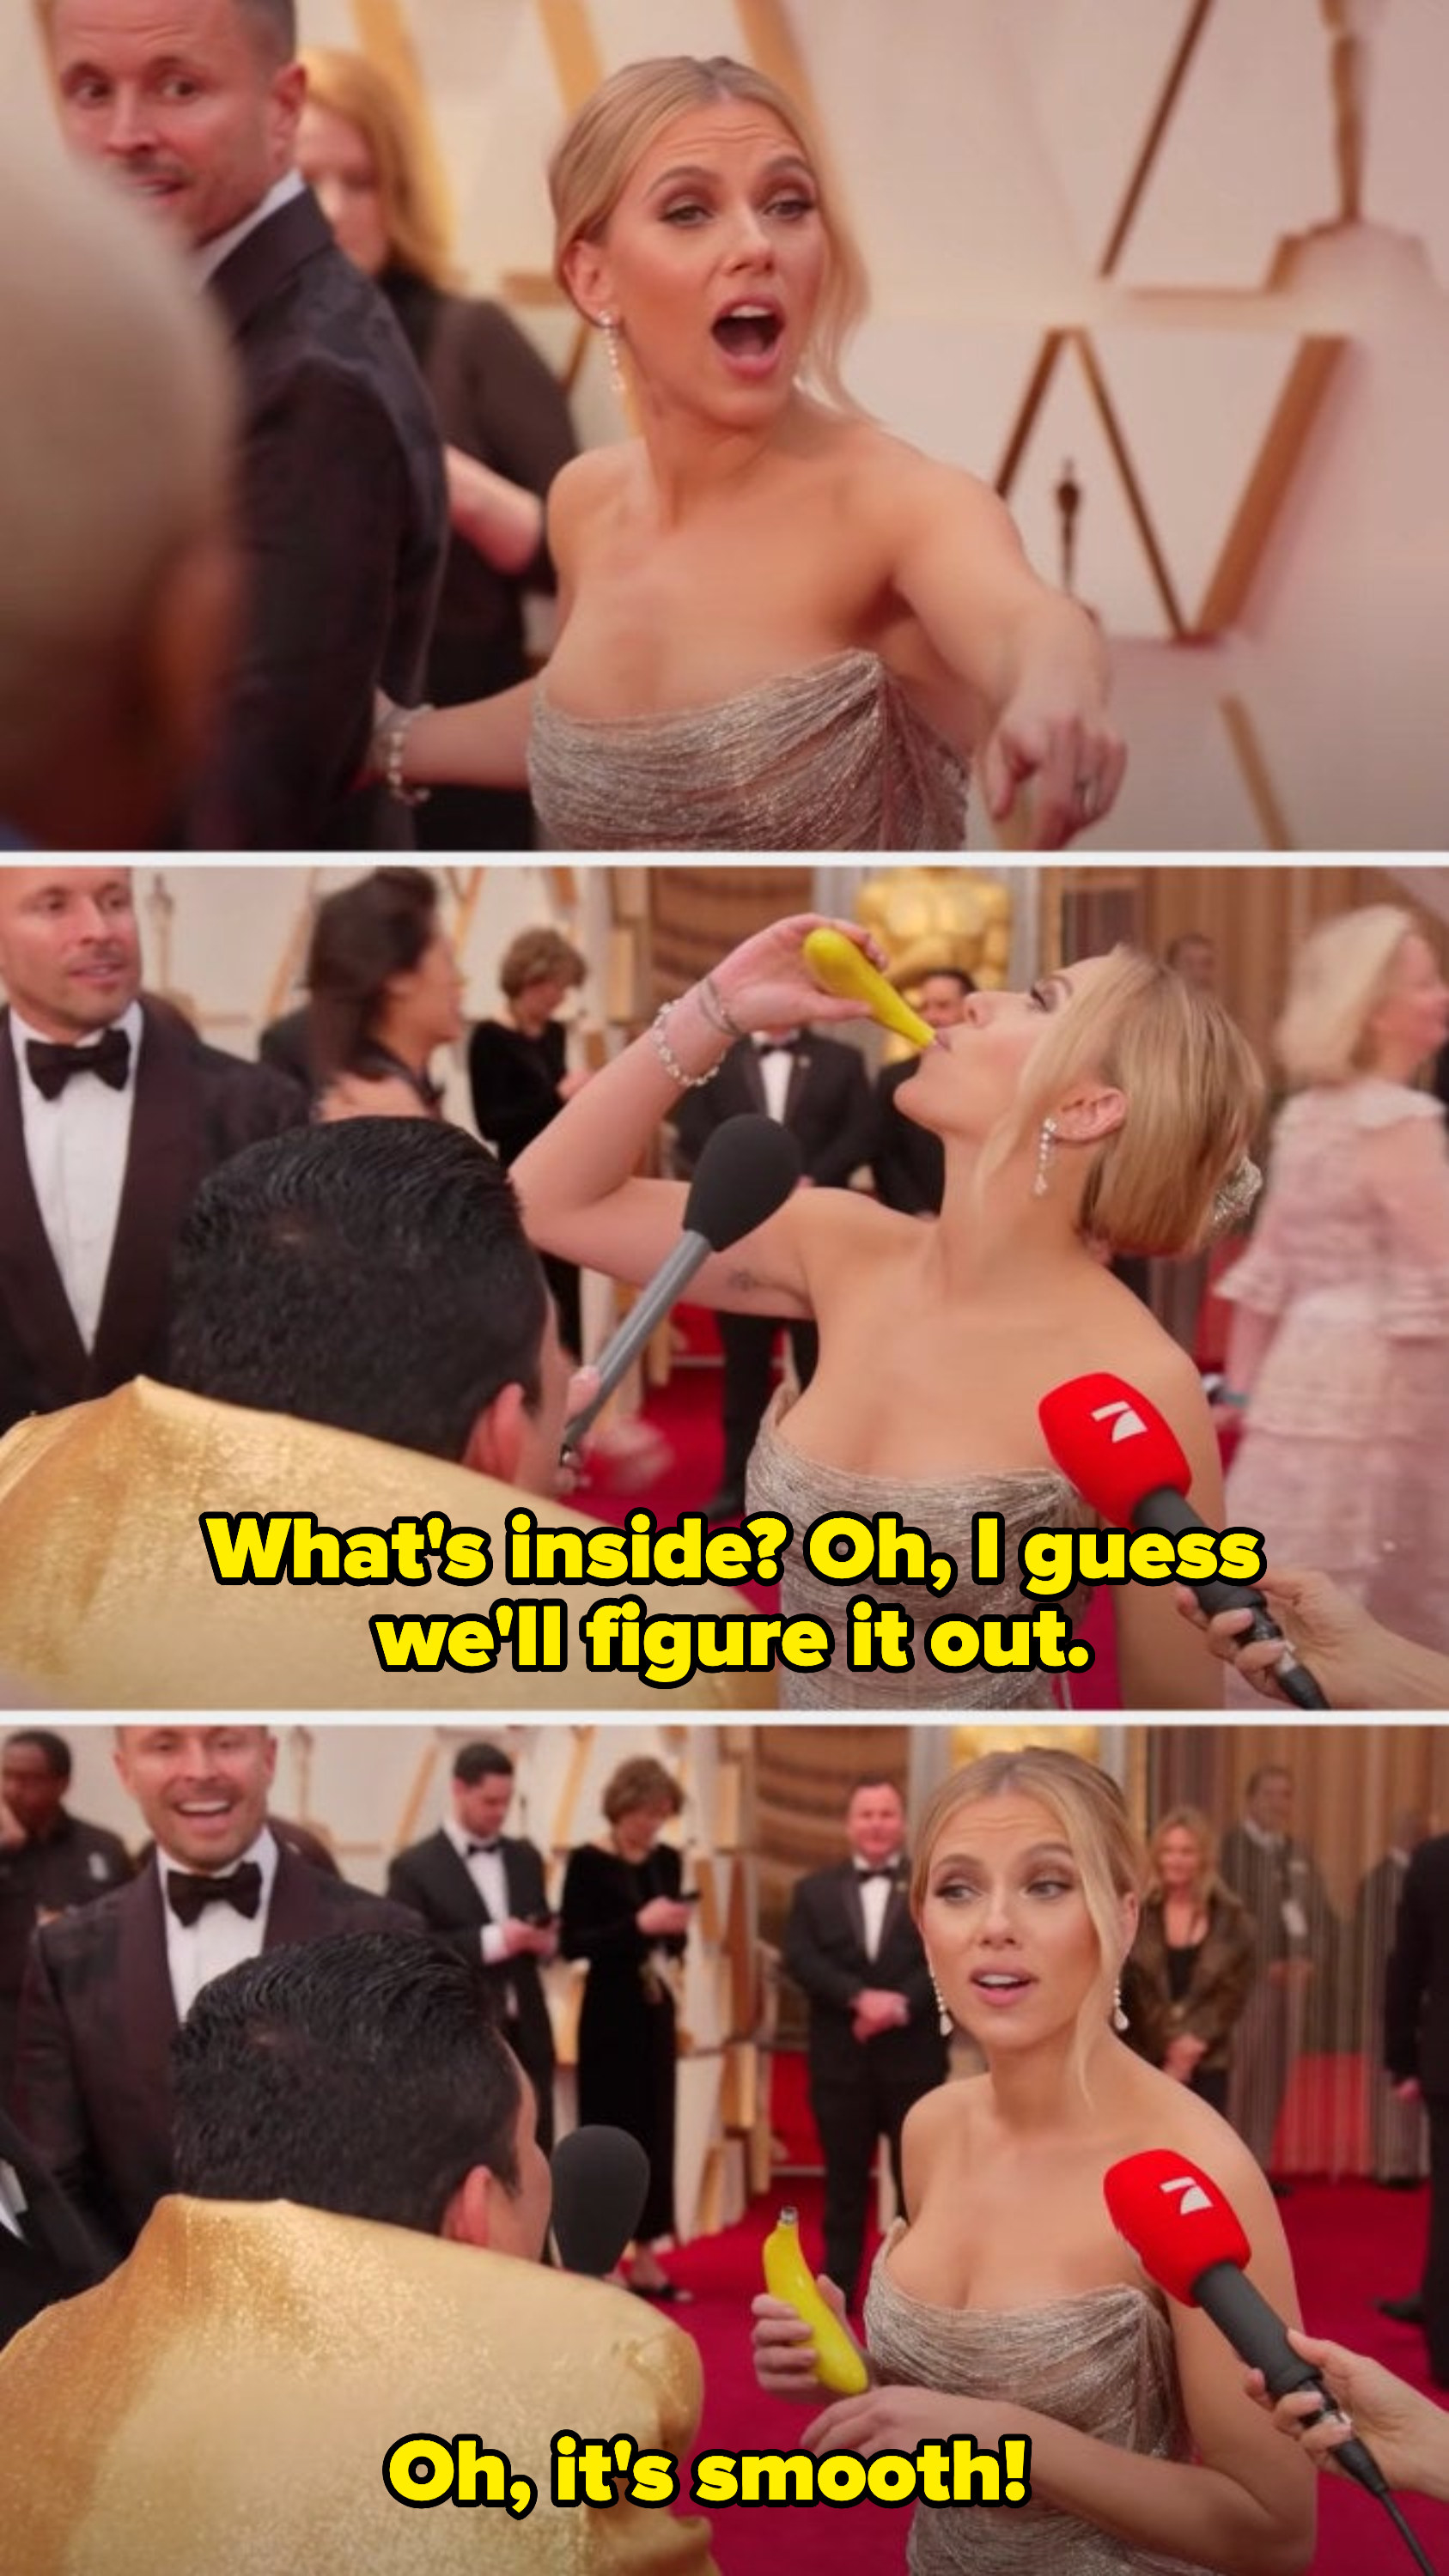 """Scarlett stops on the red carpet when she sees Guillermo holding a flask and then drinks out of it. She says, """"What's inside? Oh, I guess we'll figure it out. Oh, it's smooth!"""""""